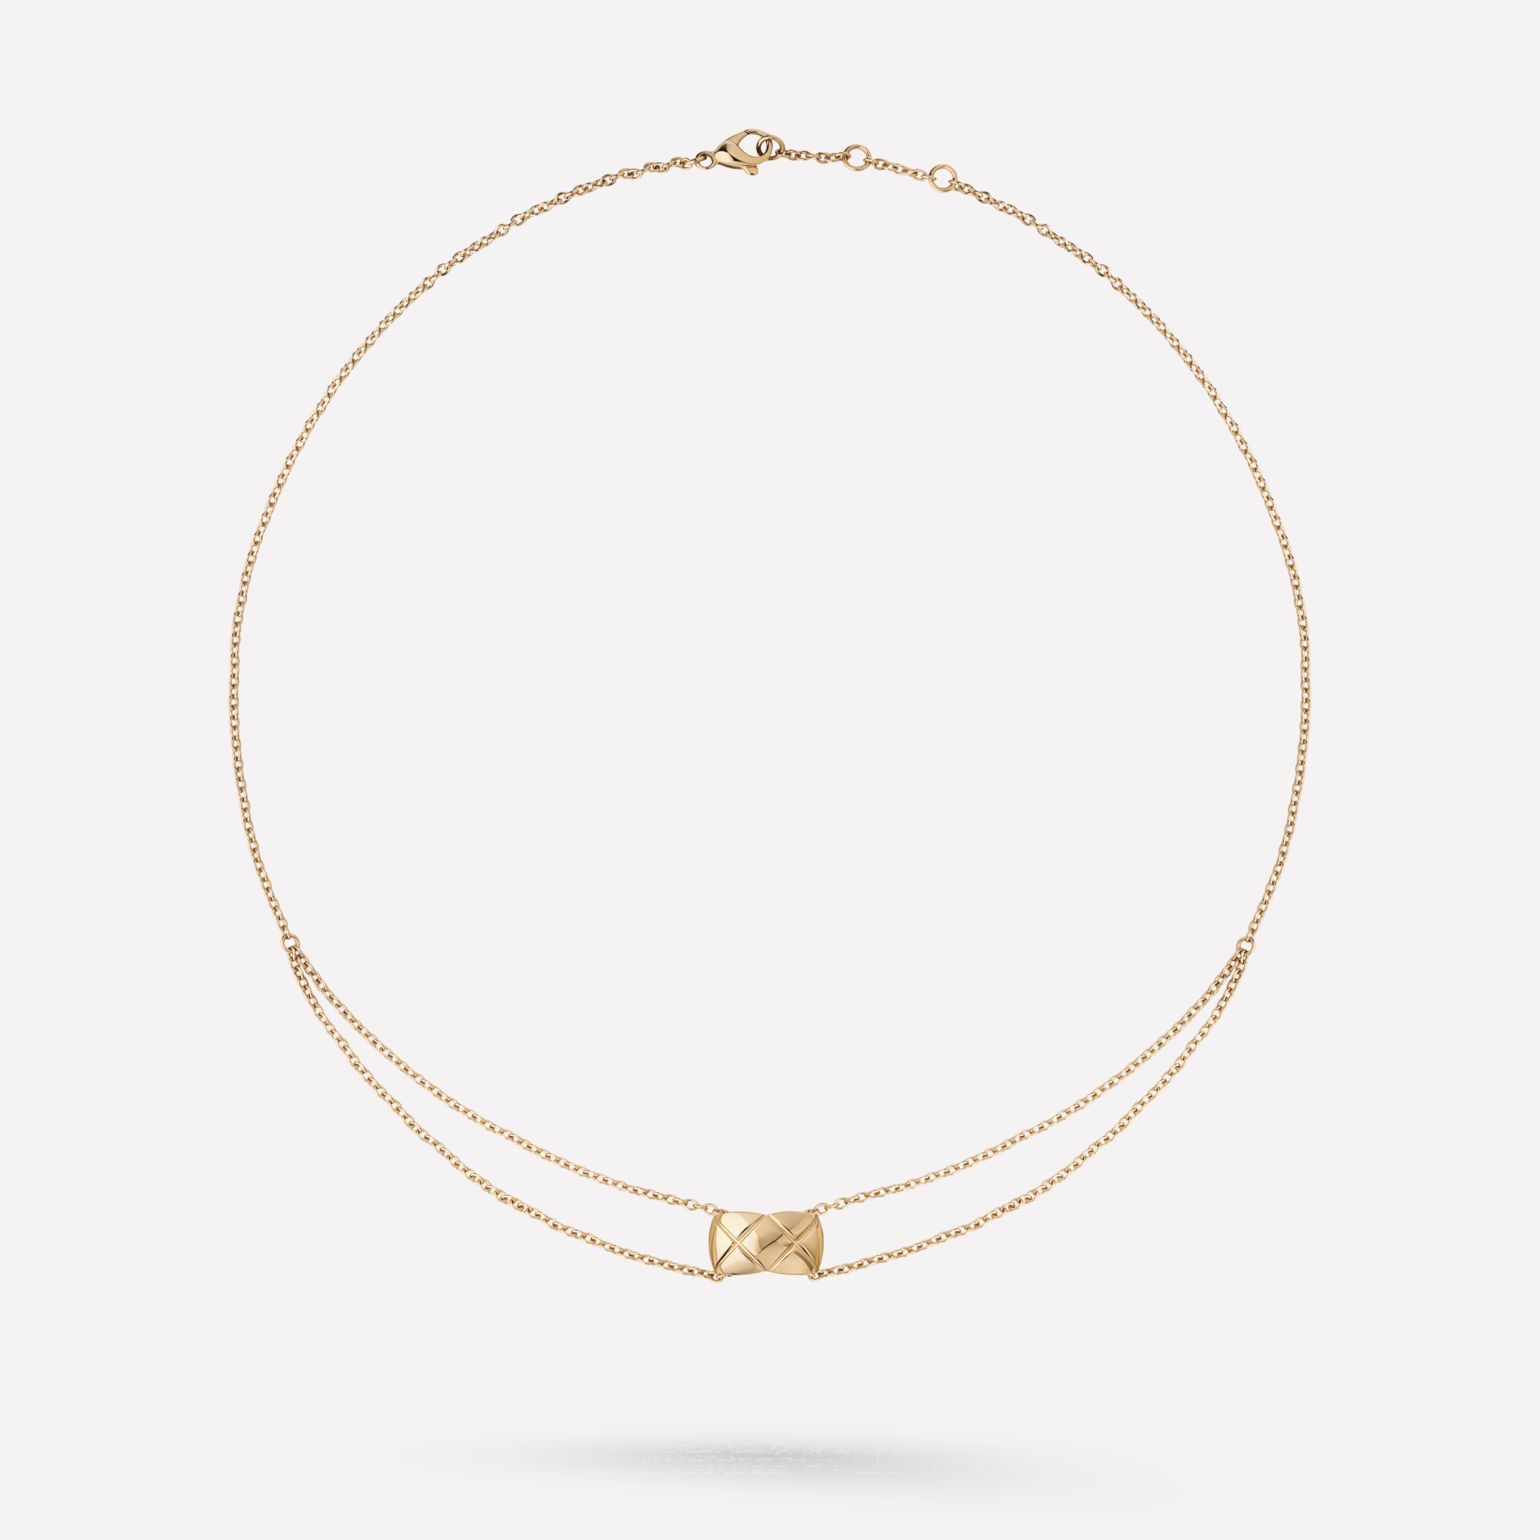 Coco Crush necklace Quilted motif necklace in 18K BEIGE GOLD